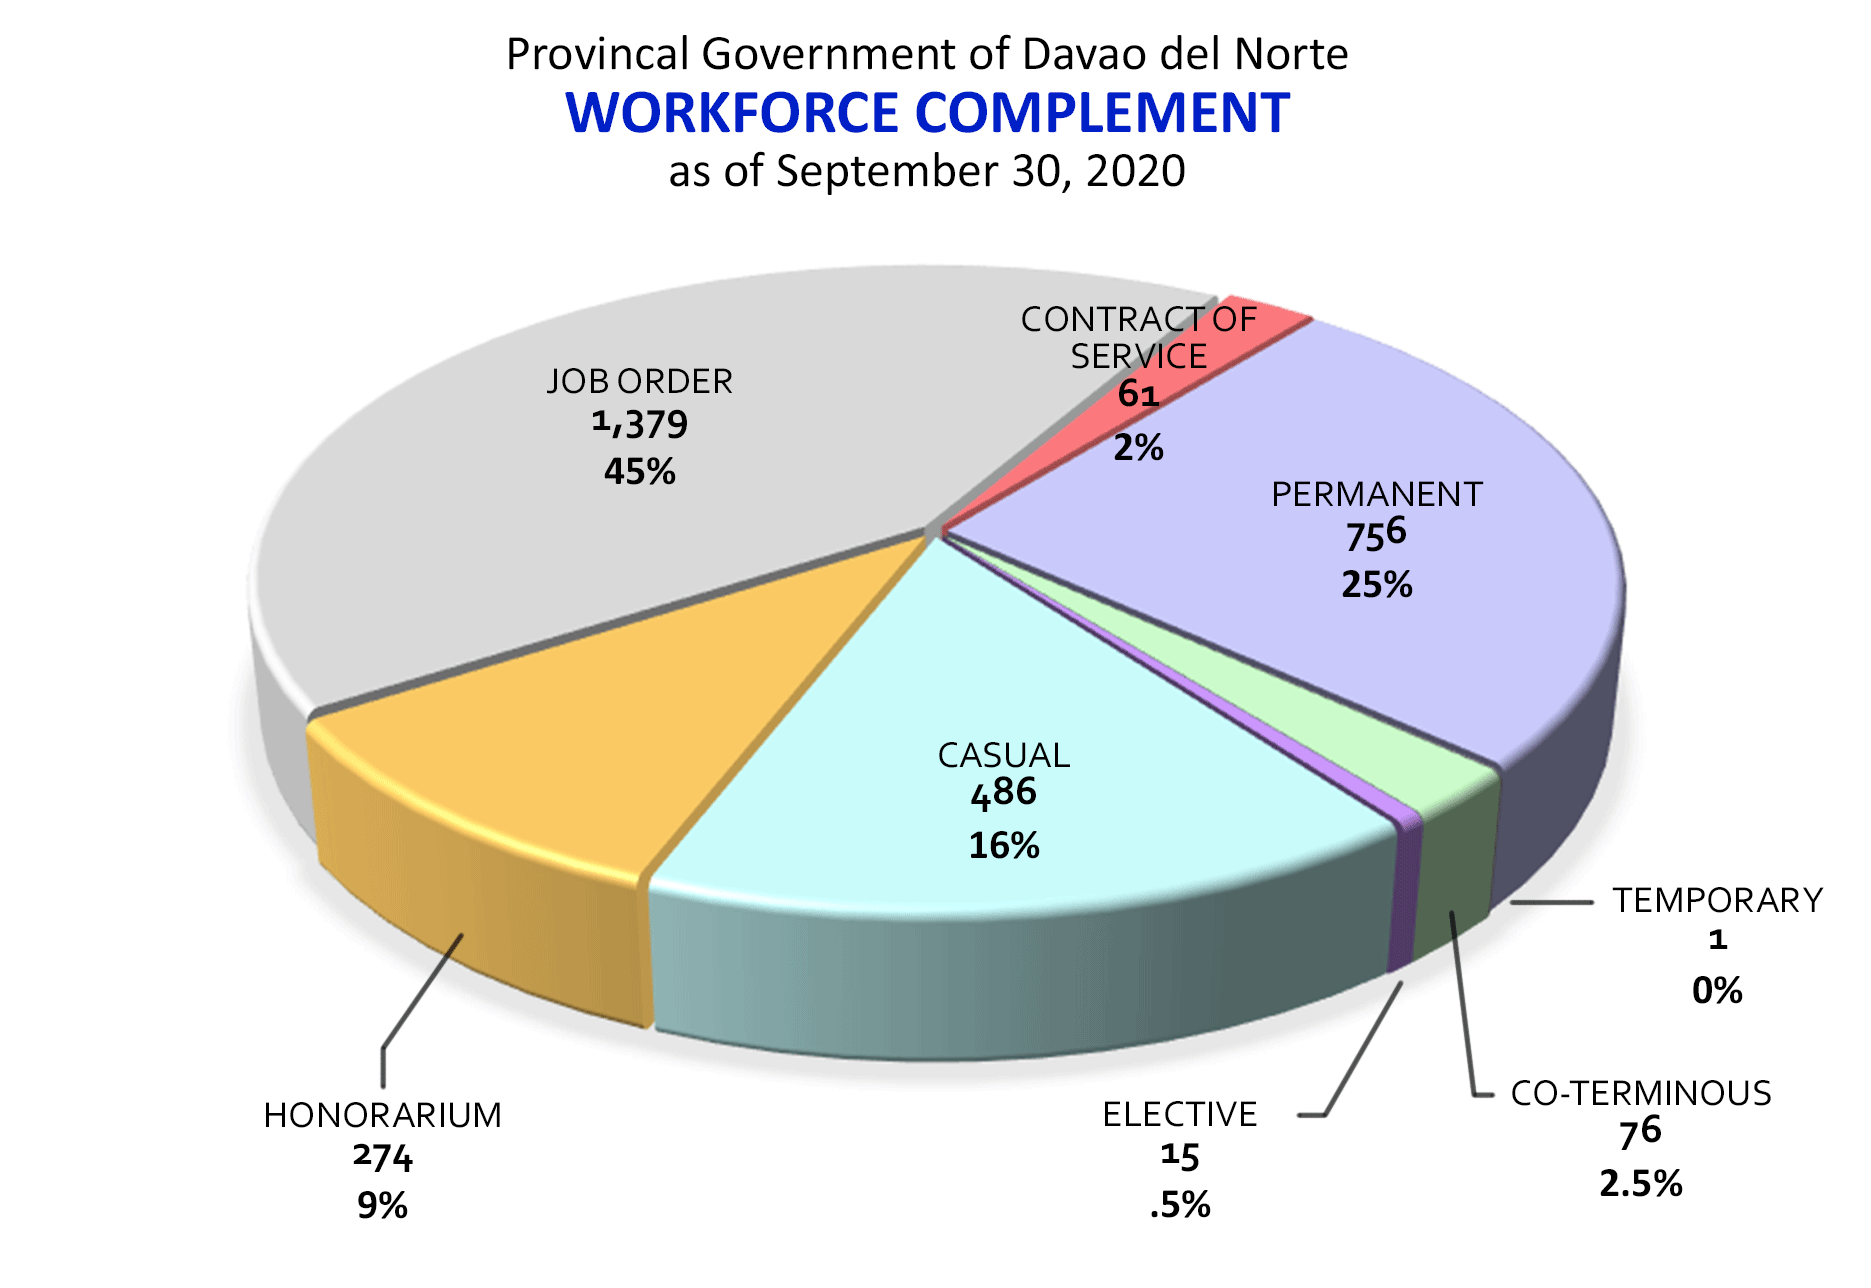 workforce complement